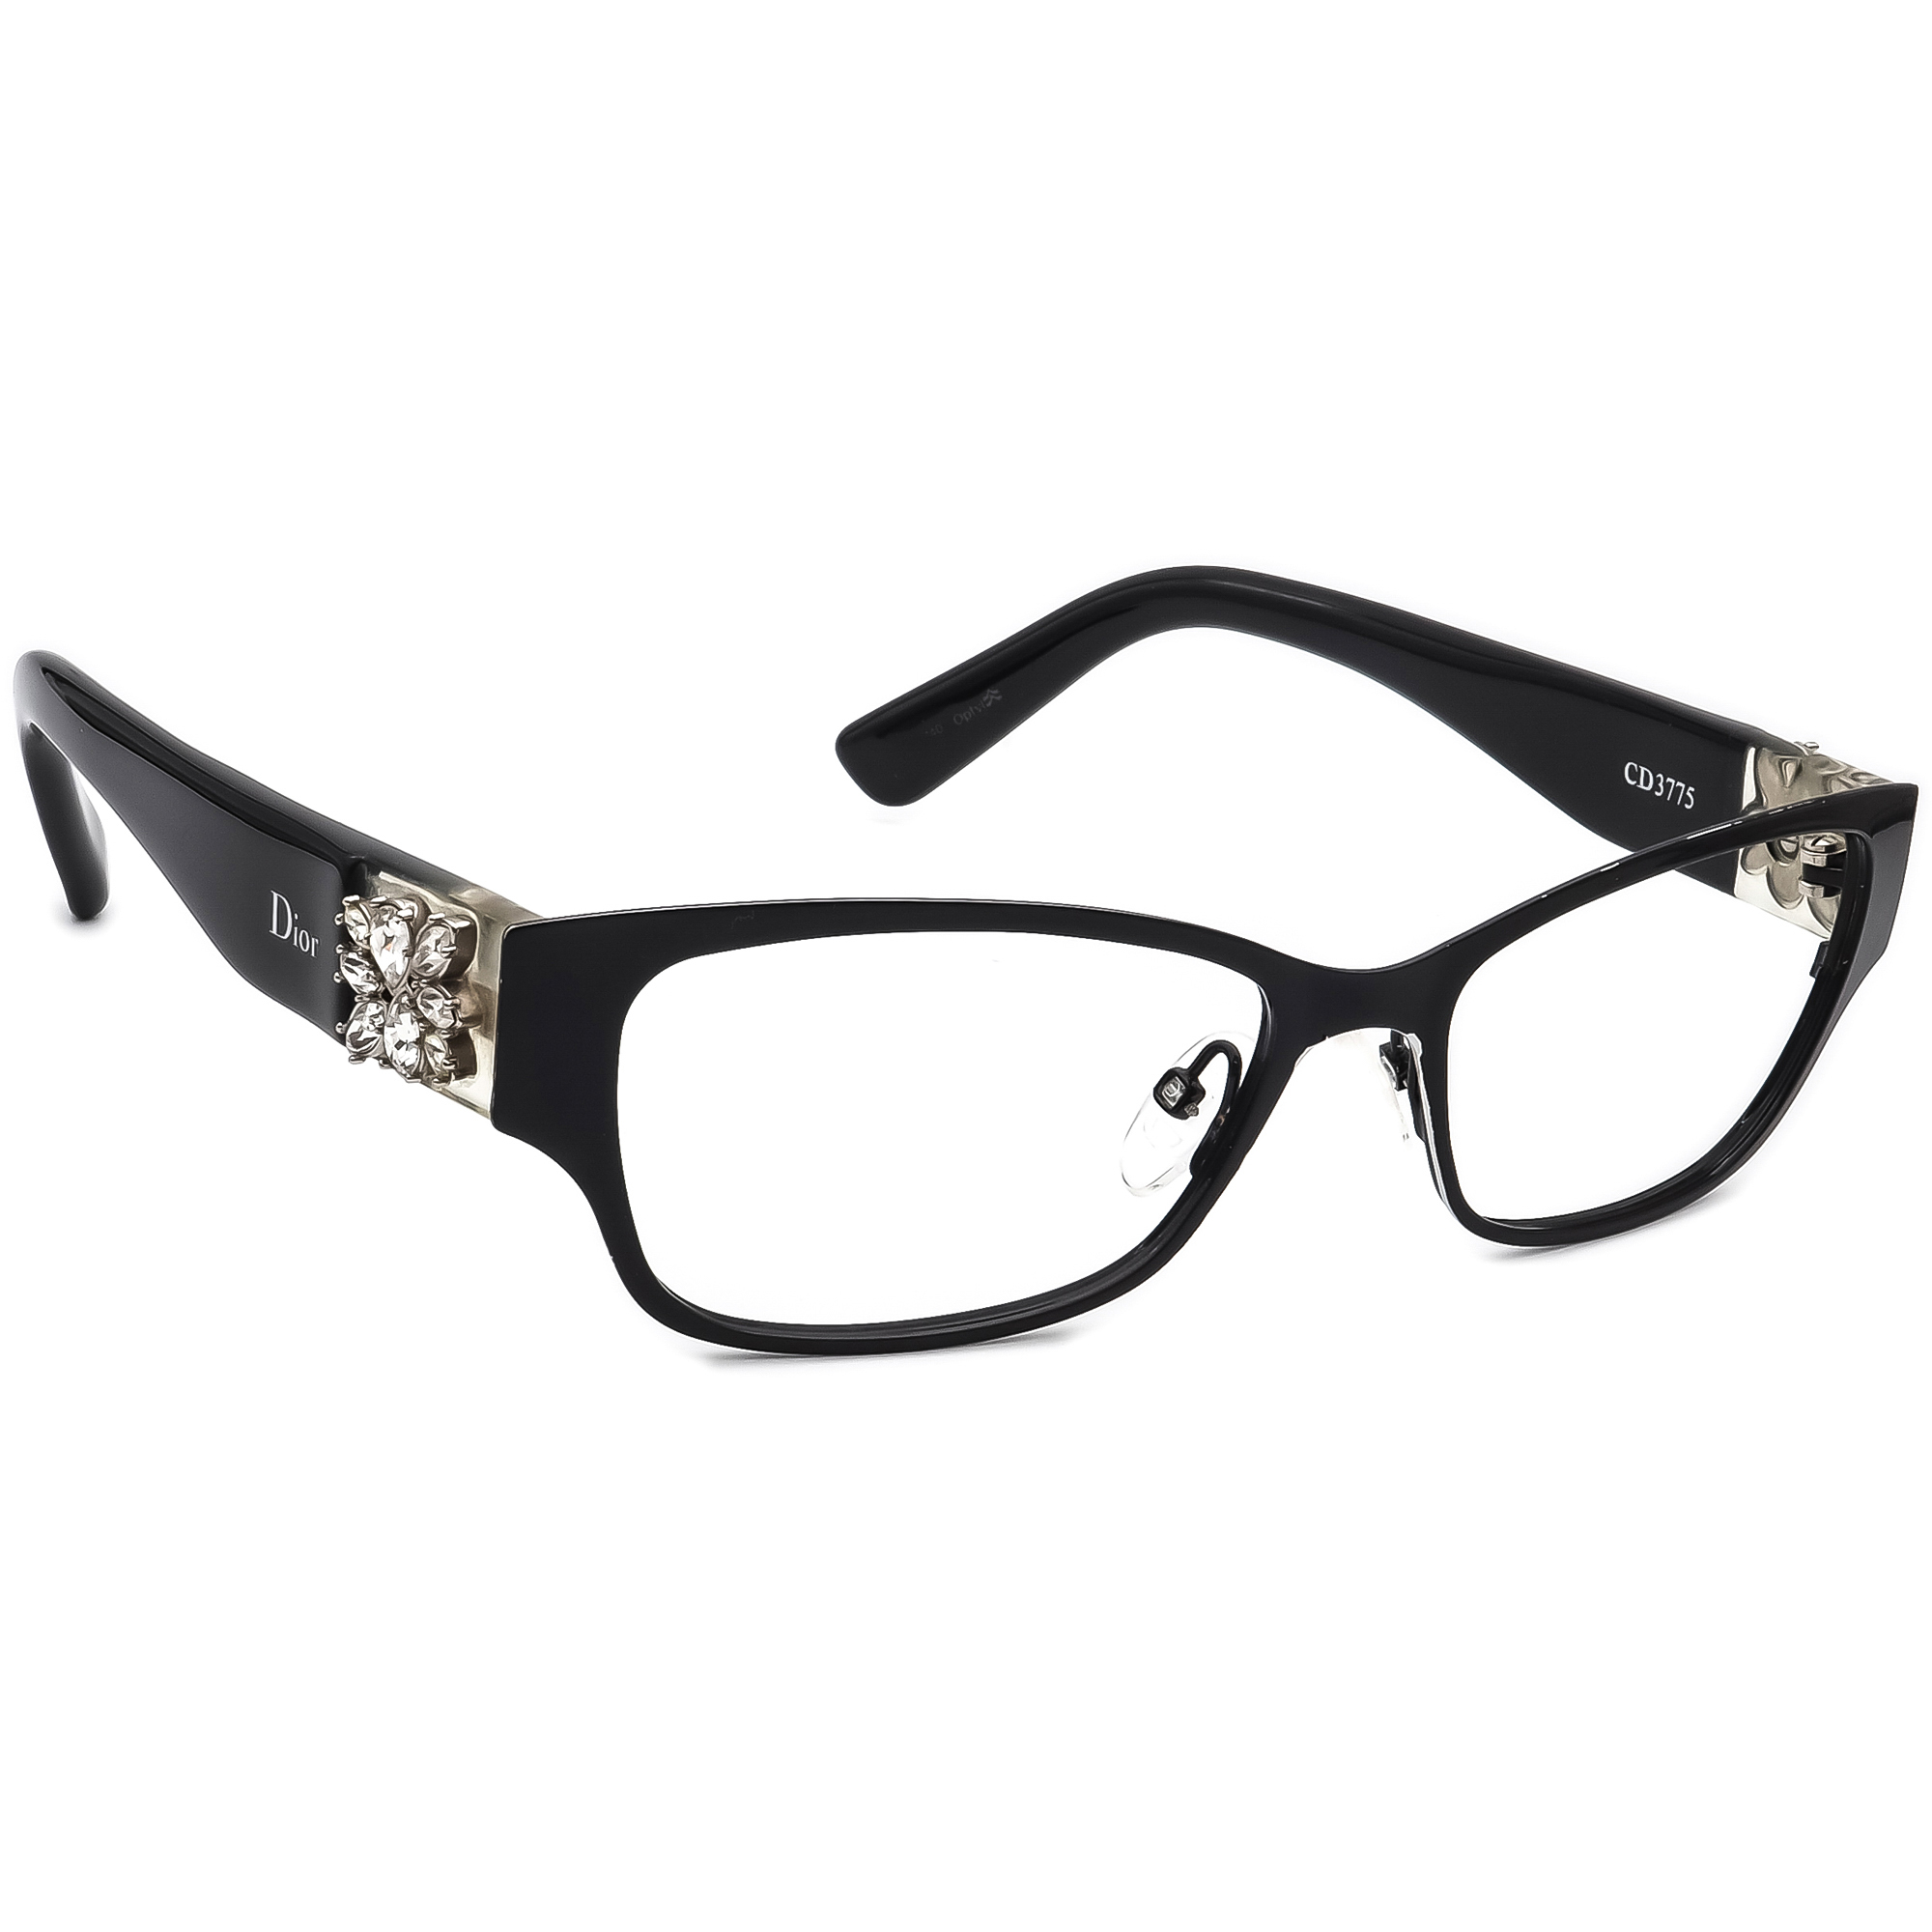 Christian Dior CD3775 Eyeglasses